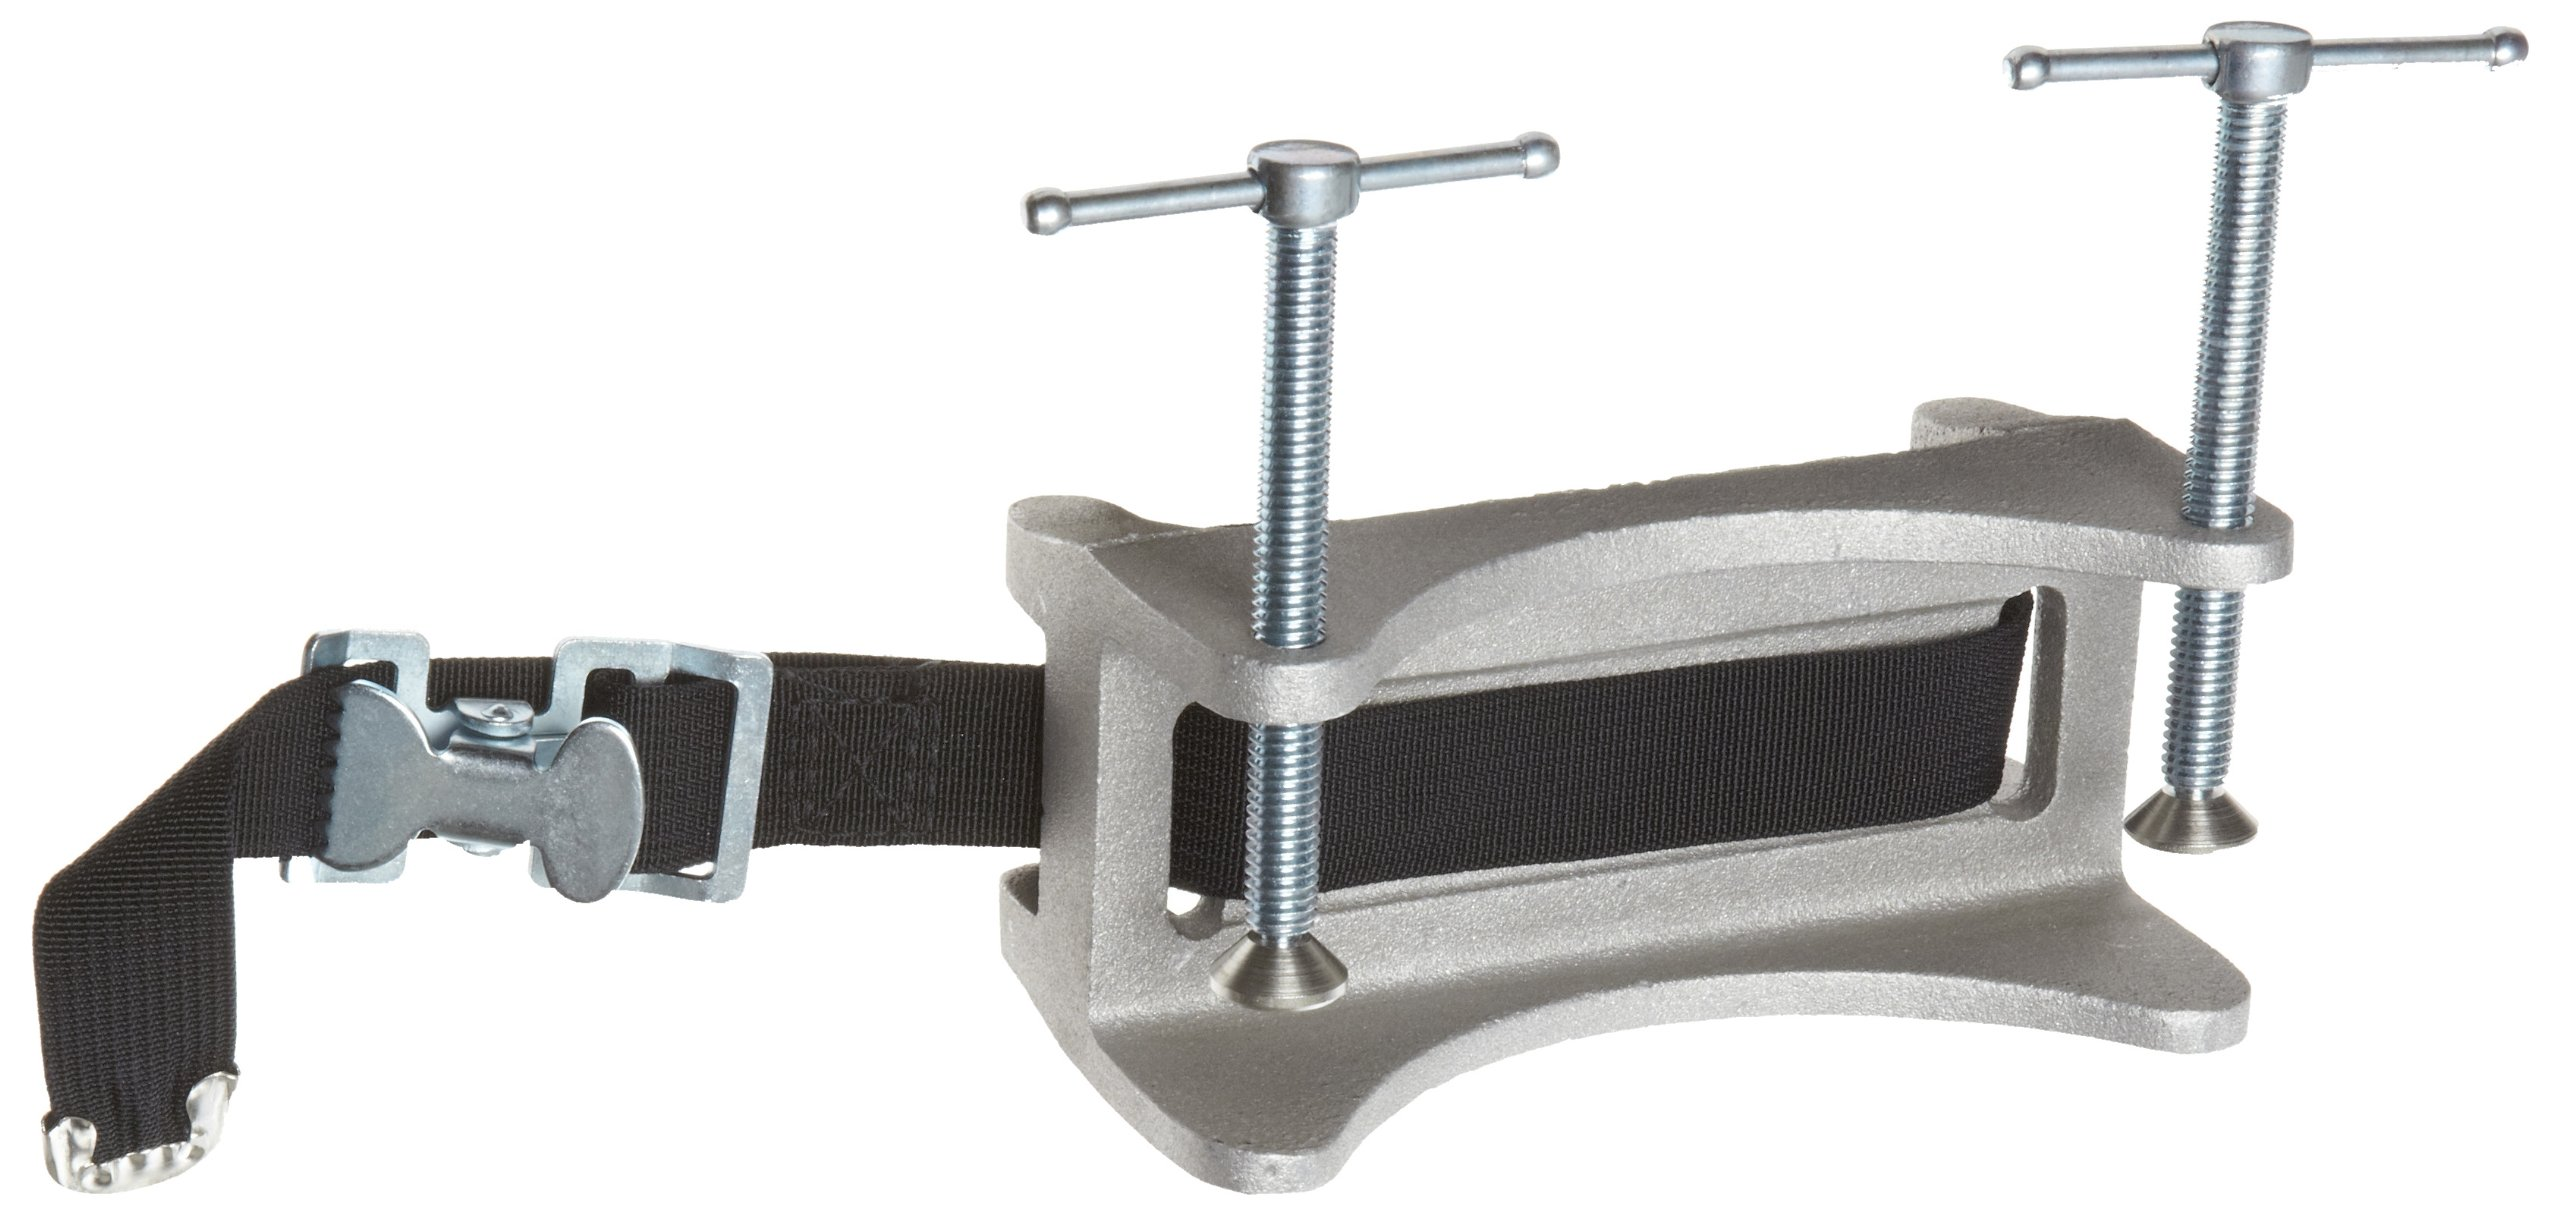 Talboys 712 Aluminum Heavy-Duty Cylinder Bench Clamp with Strap, 3.25'' Length x 6'' Width x 4.5'' Height by Talboys